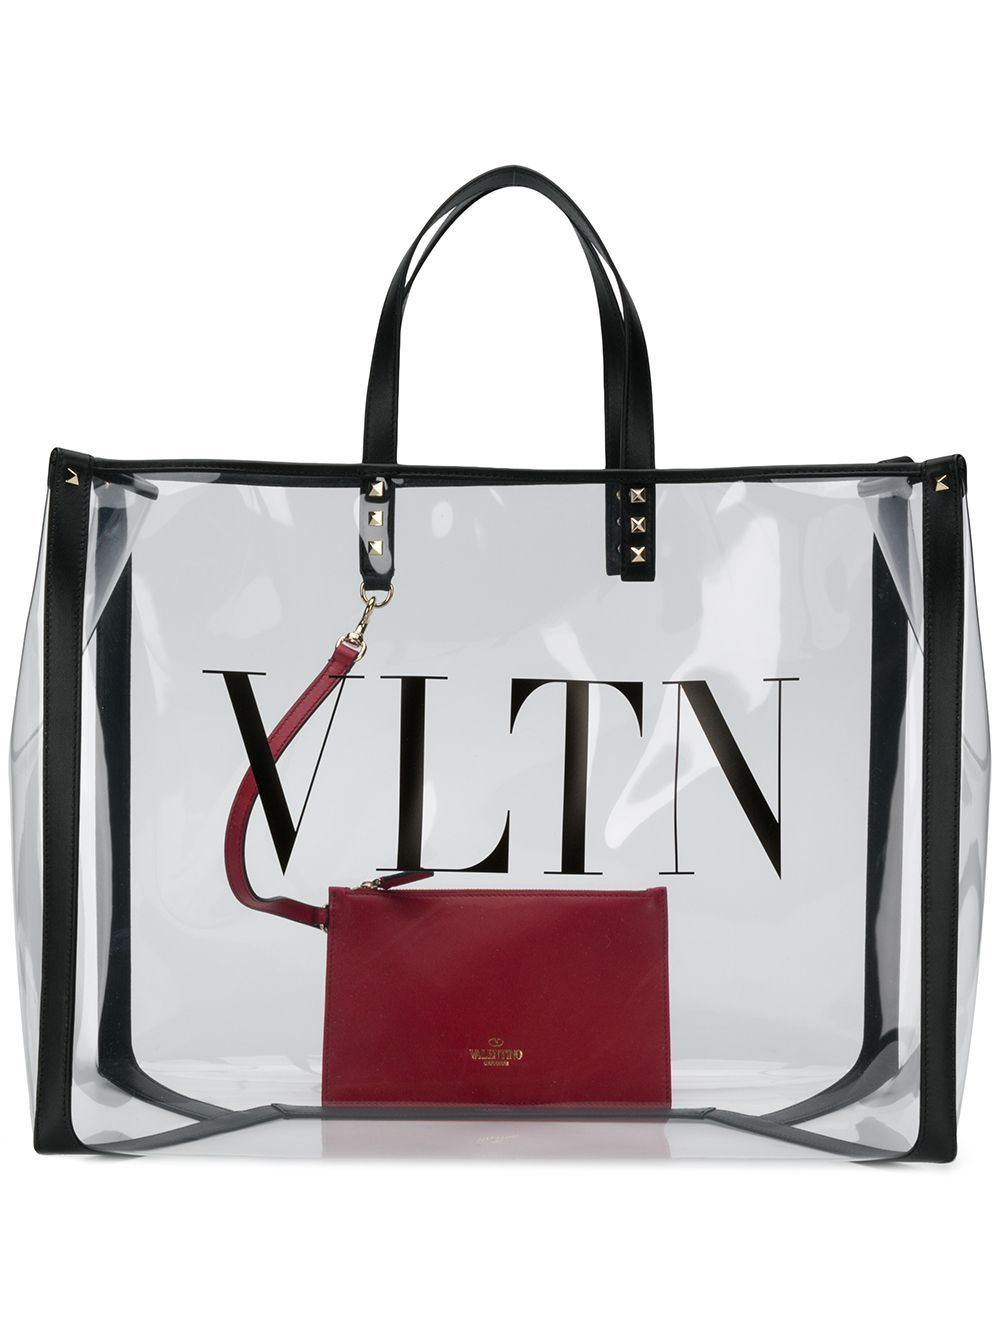 Vltn Large Tote Bag